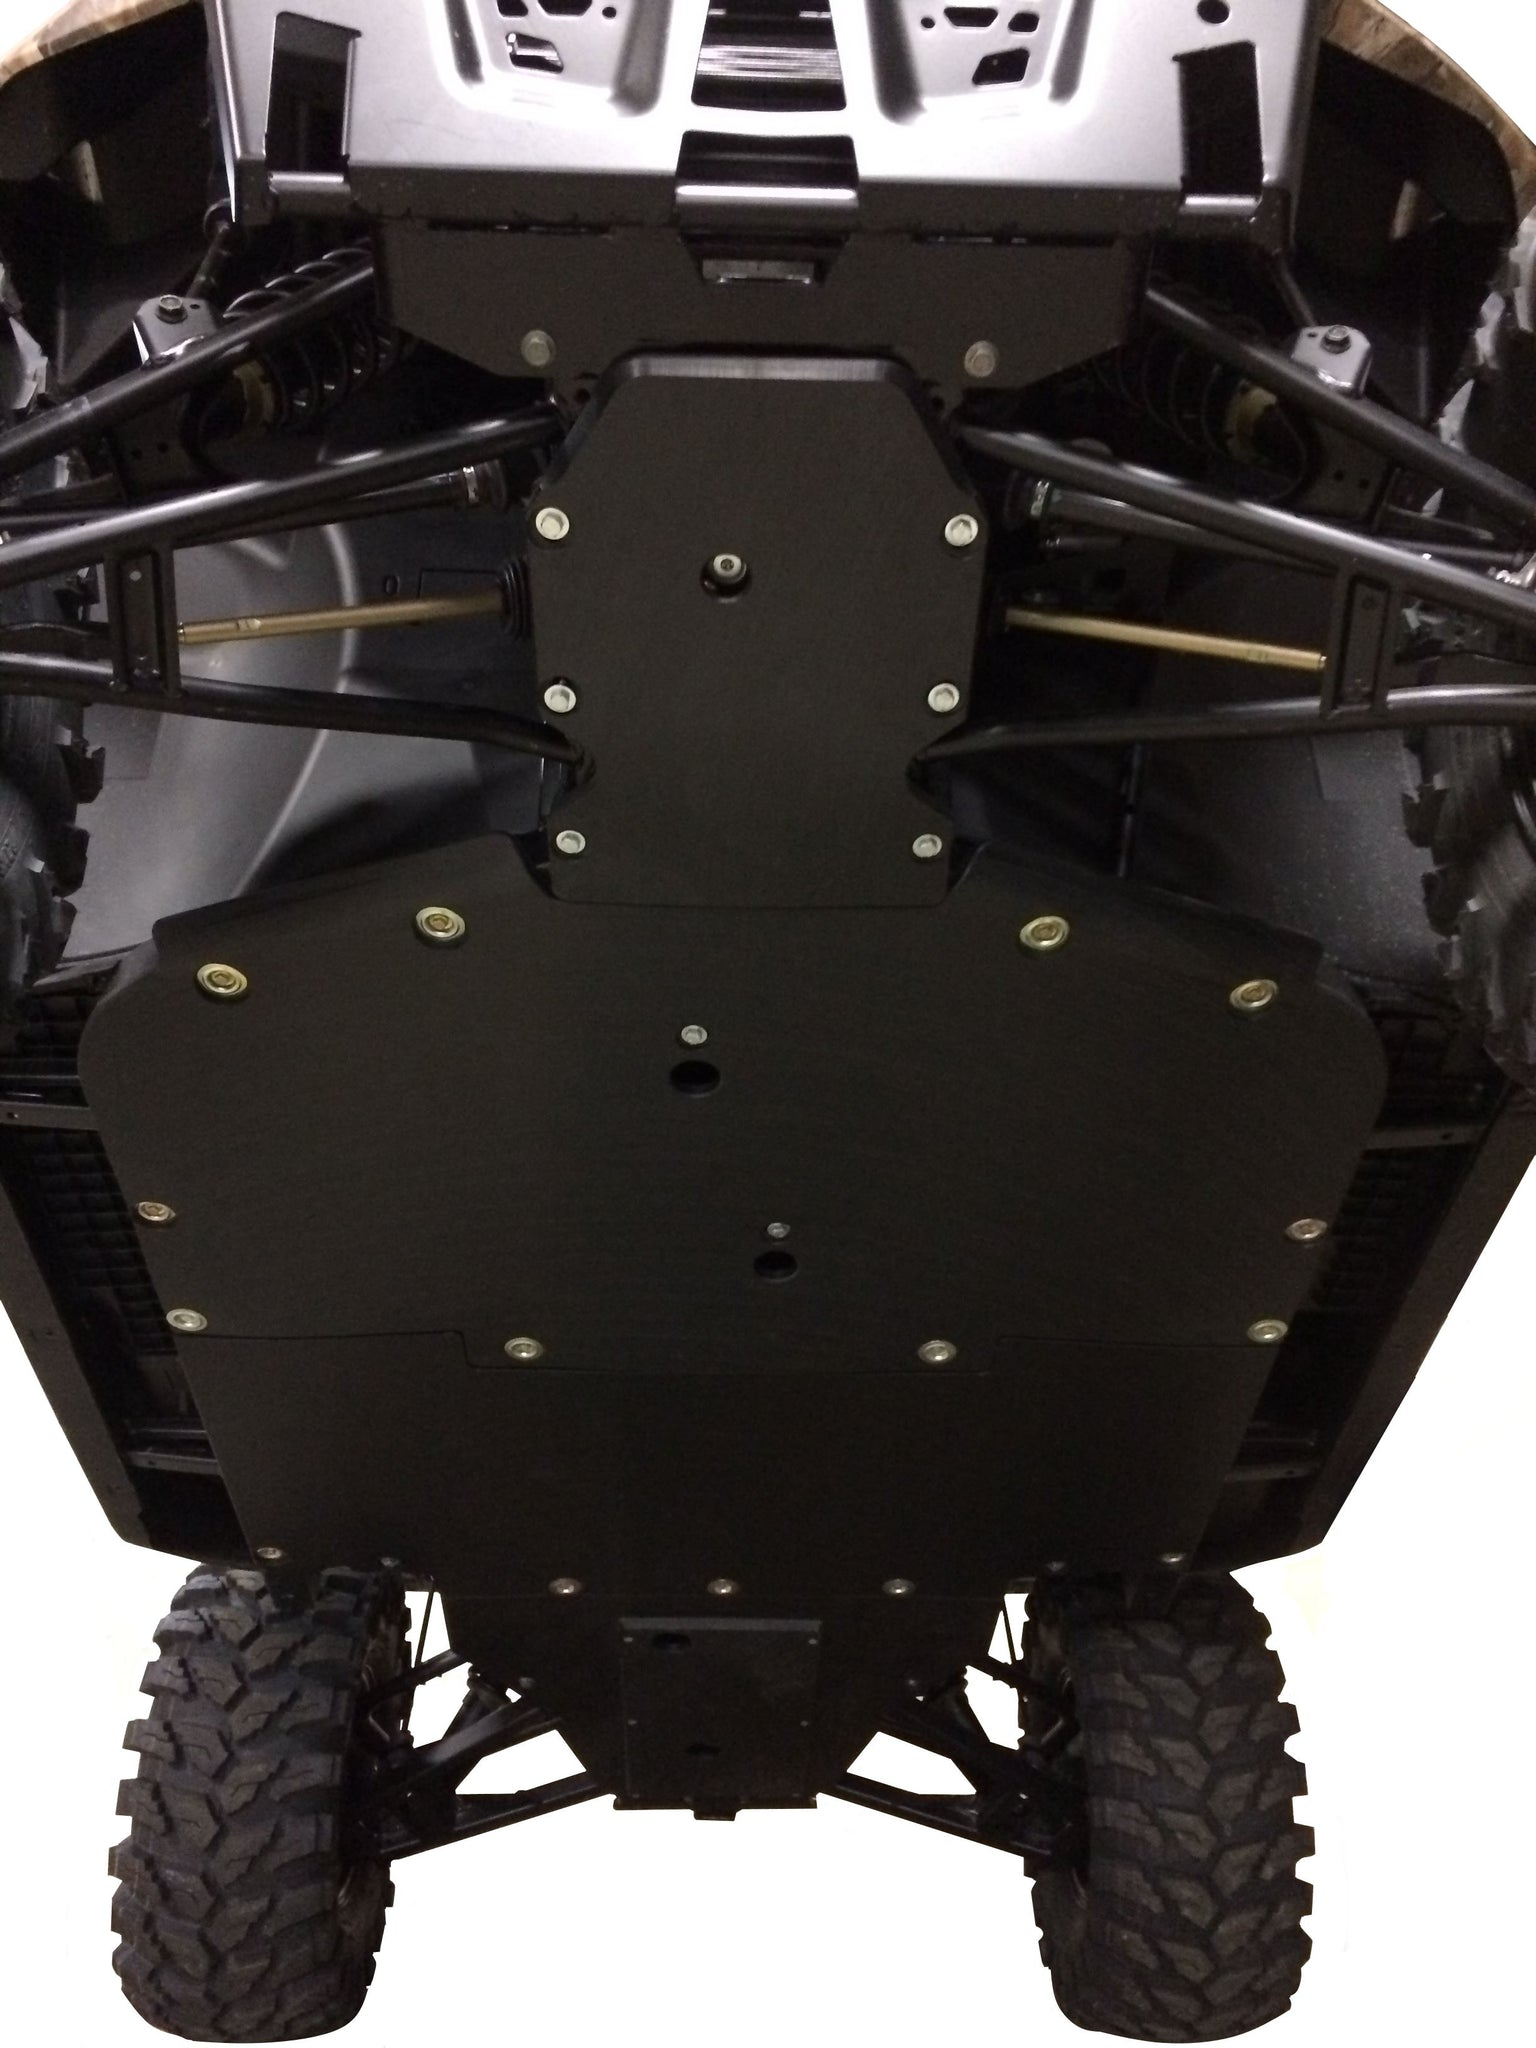 4-Piece Full Frame Skid Plate Set, Polaris Ranger XP 1000